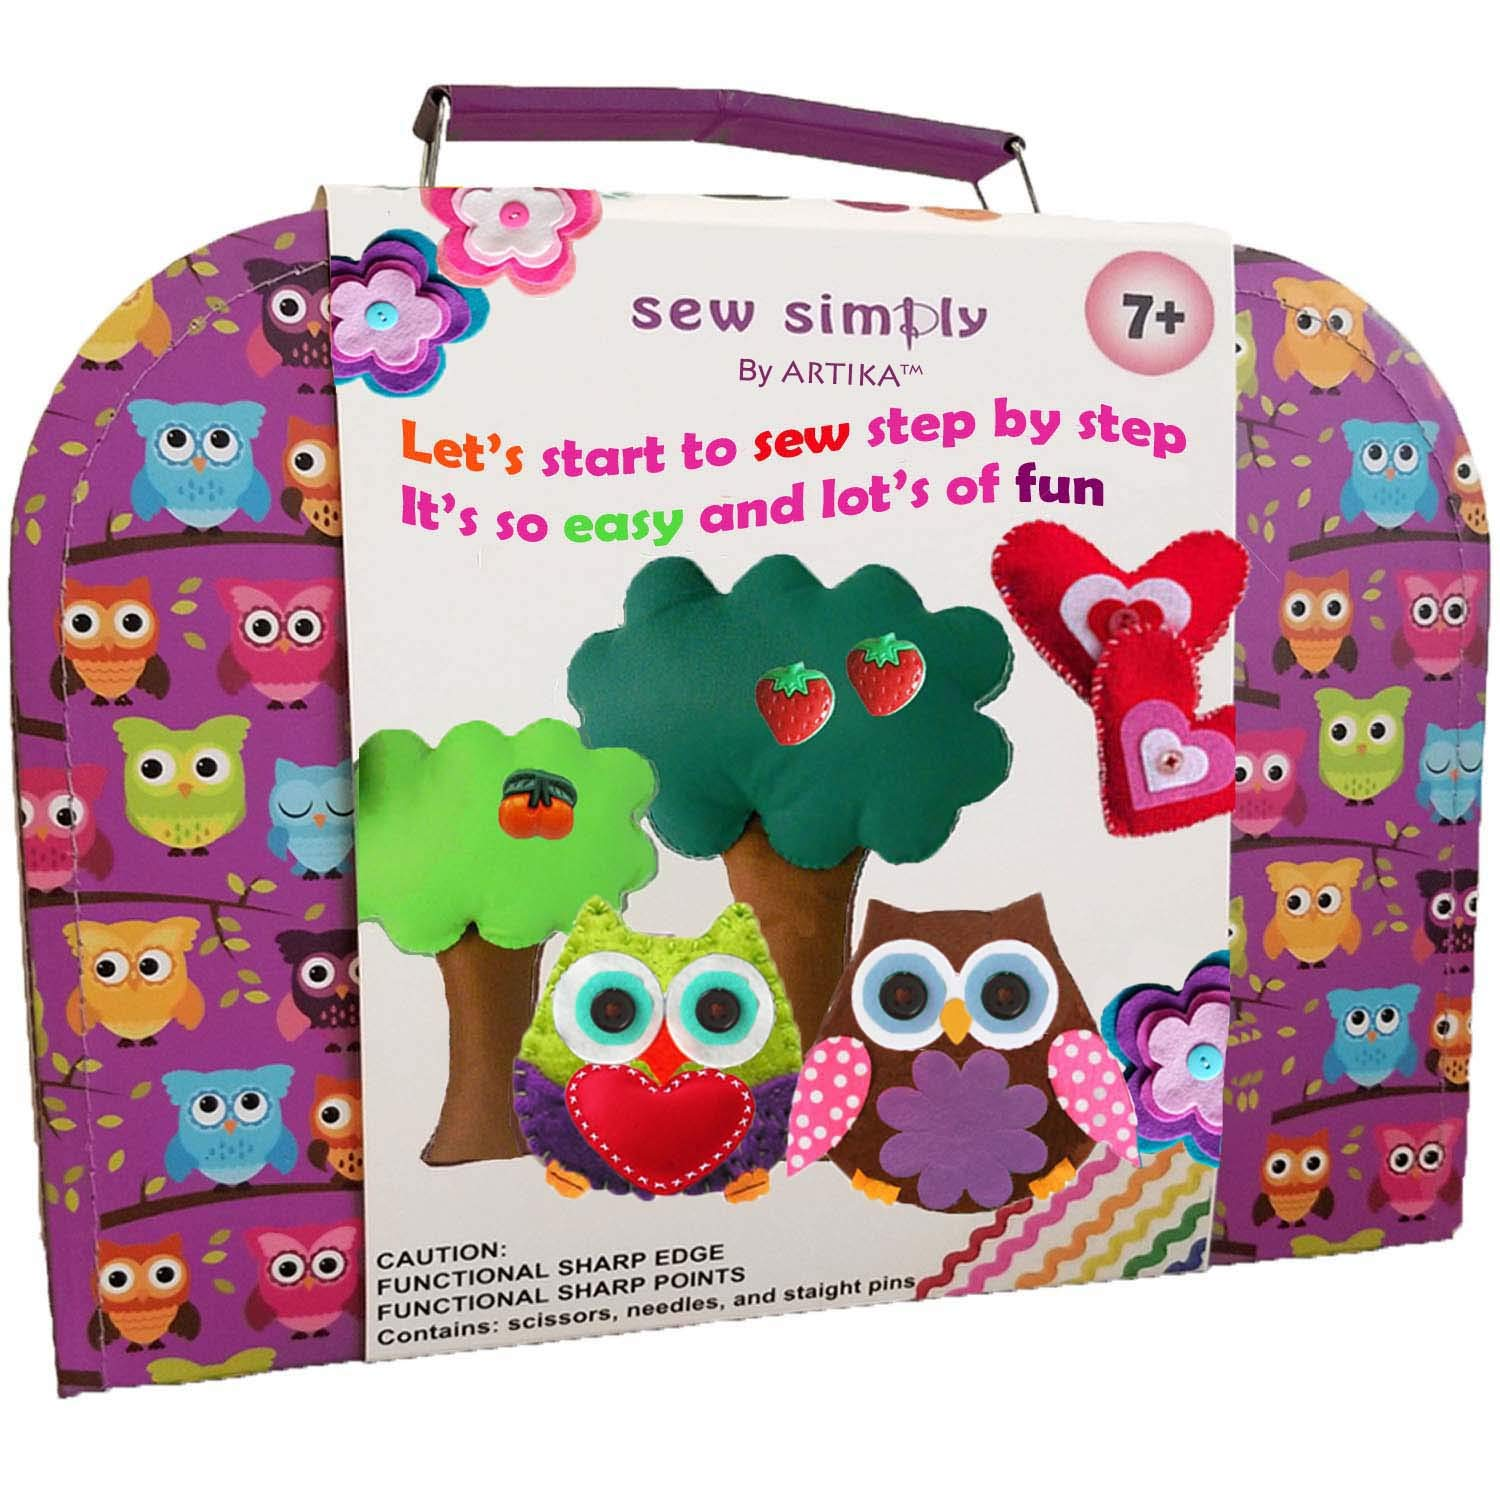 ARTIKA Sewing Kit for Kids, DIY Craft for Kids, The Most Wide-Ranging Kids Sewing Kit, Quality Kids Sewing Supplies, Includes a Booklet of Cutting Stencil Shapes for The First Step in Sewing by ARTIKA